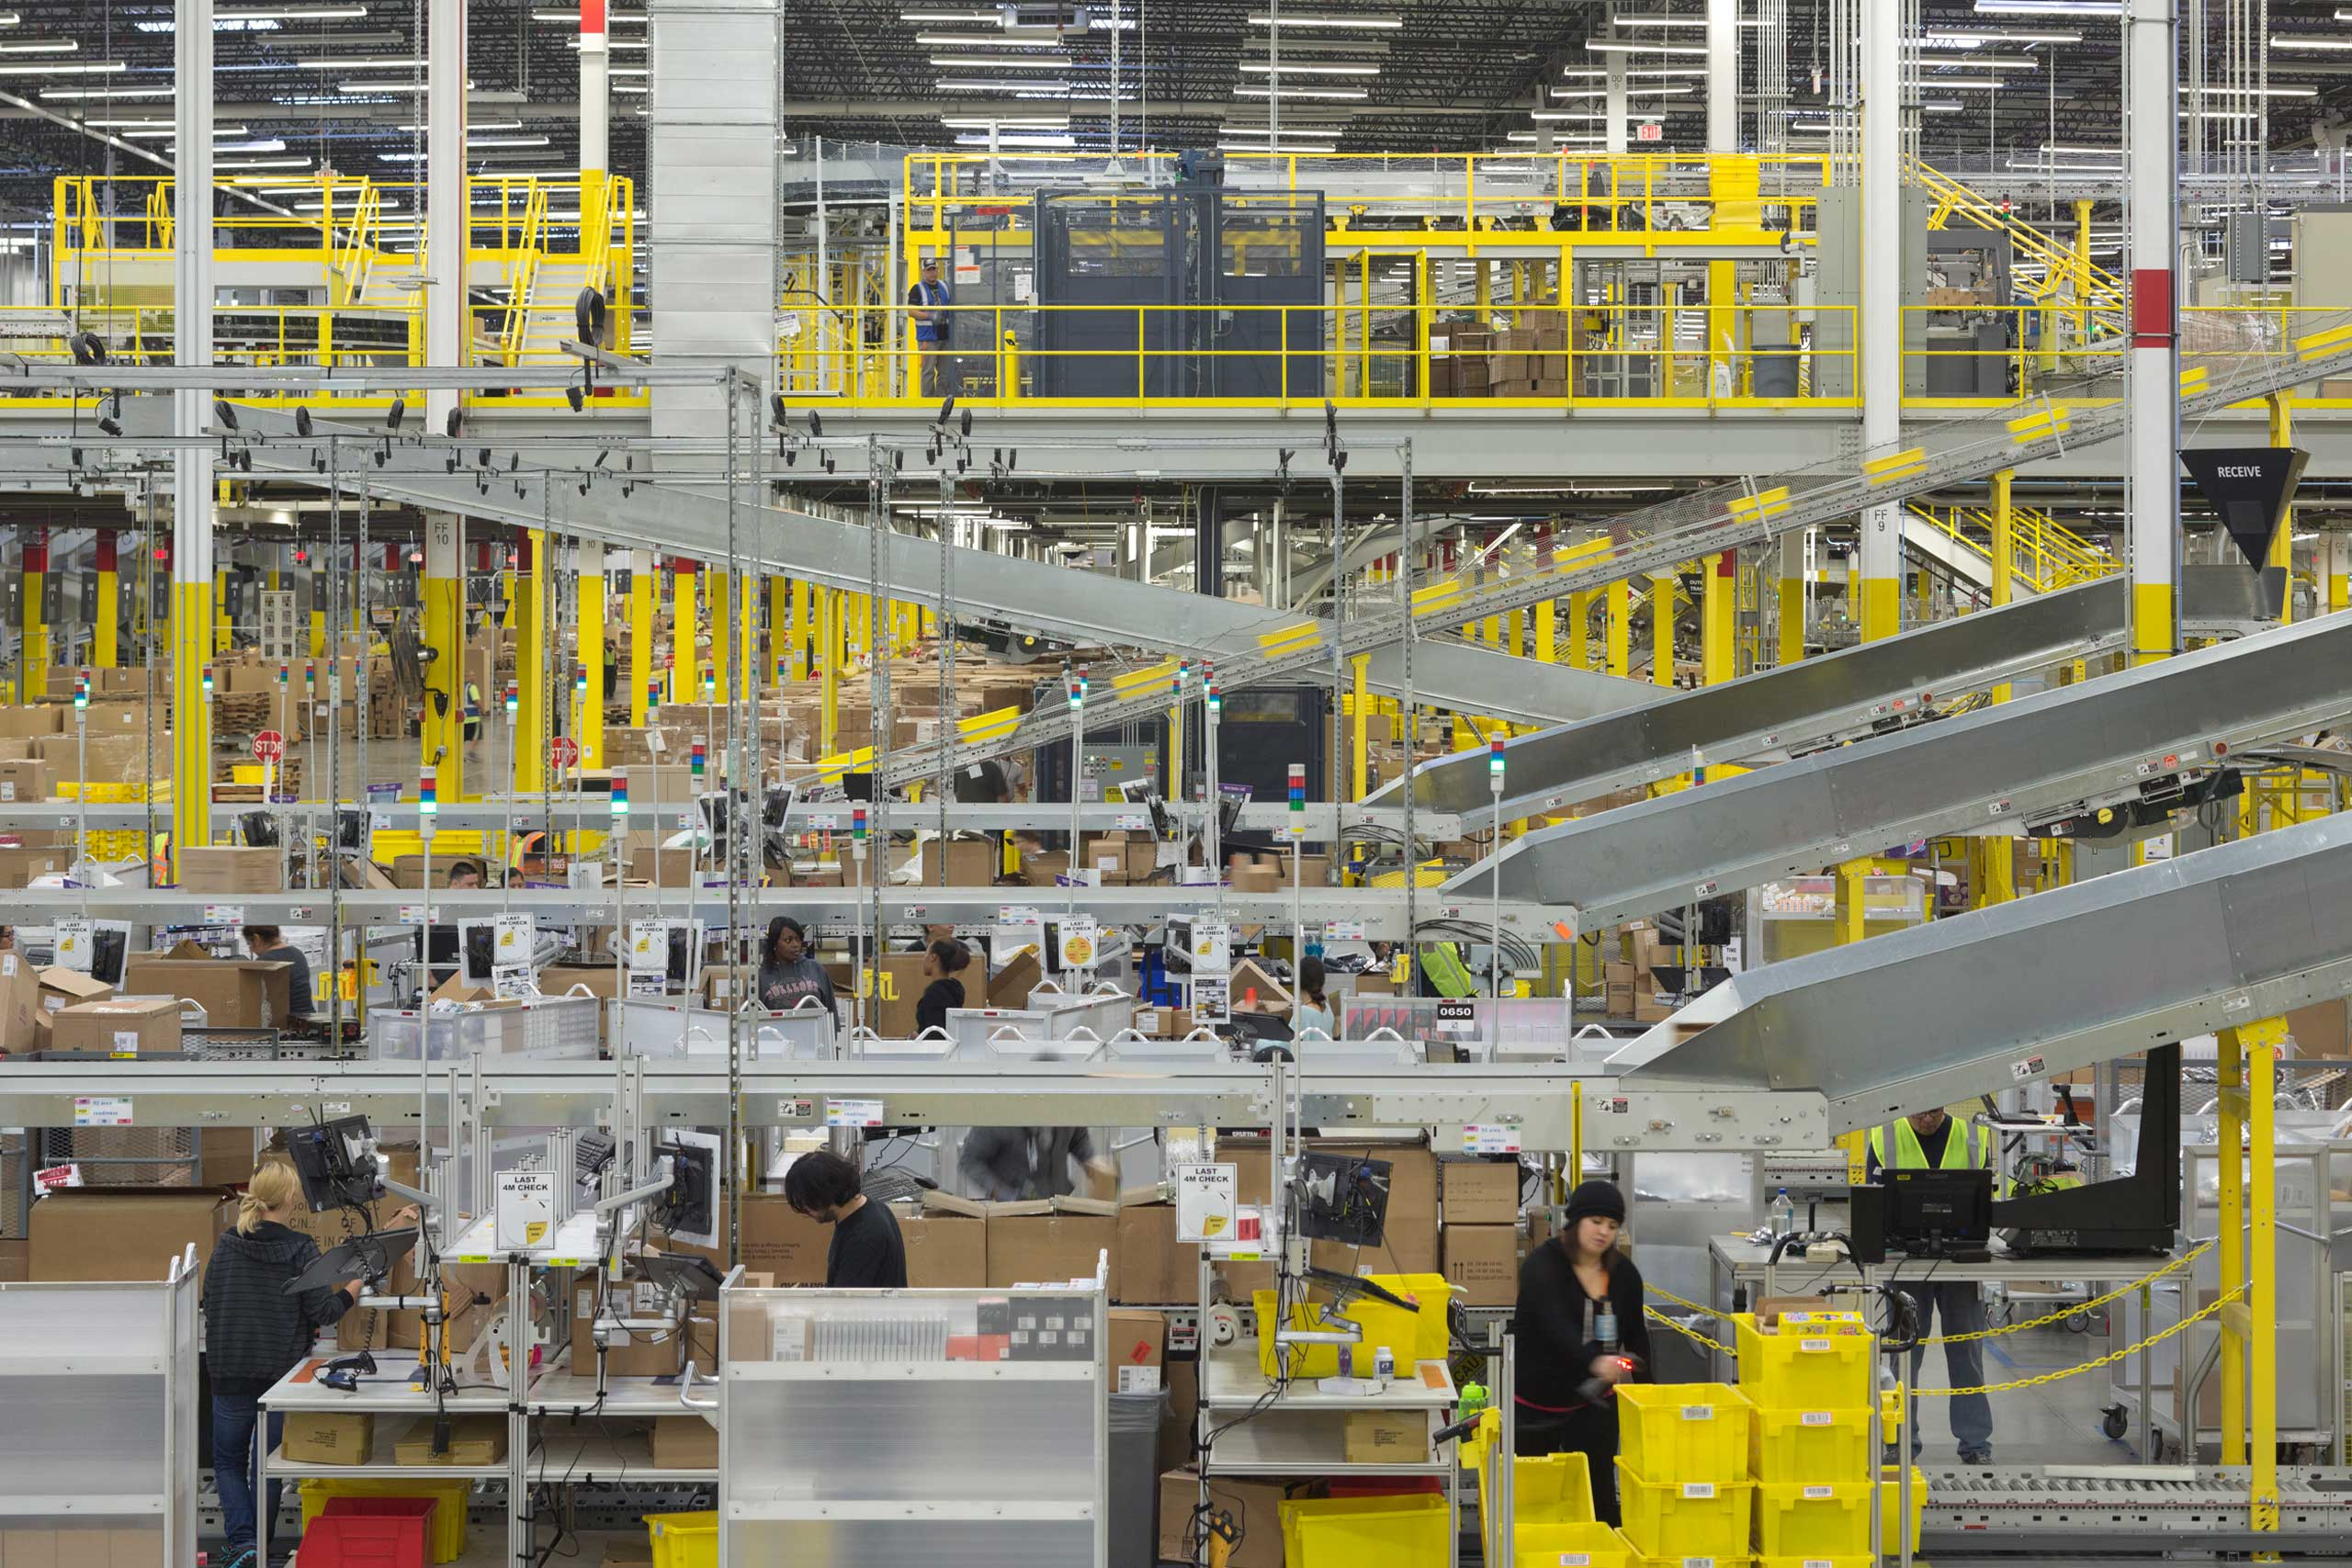 The packaging process at the Amazon fulfillment center in Tracy, Calif. on Nov. 21, 2014.